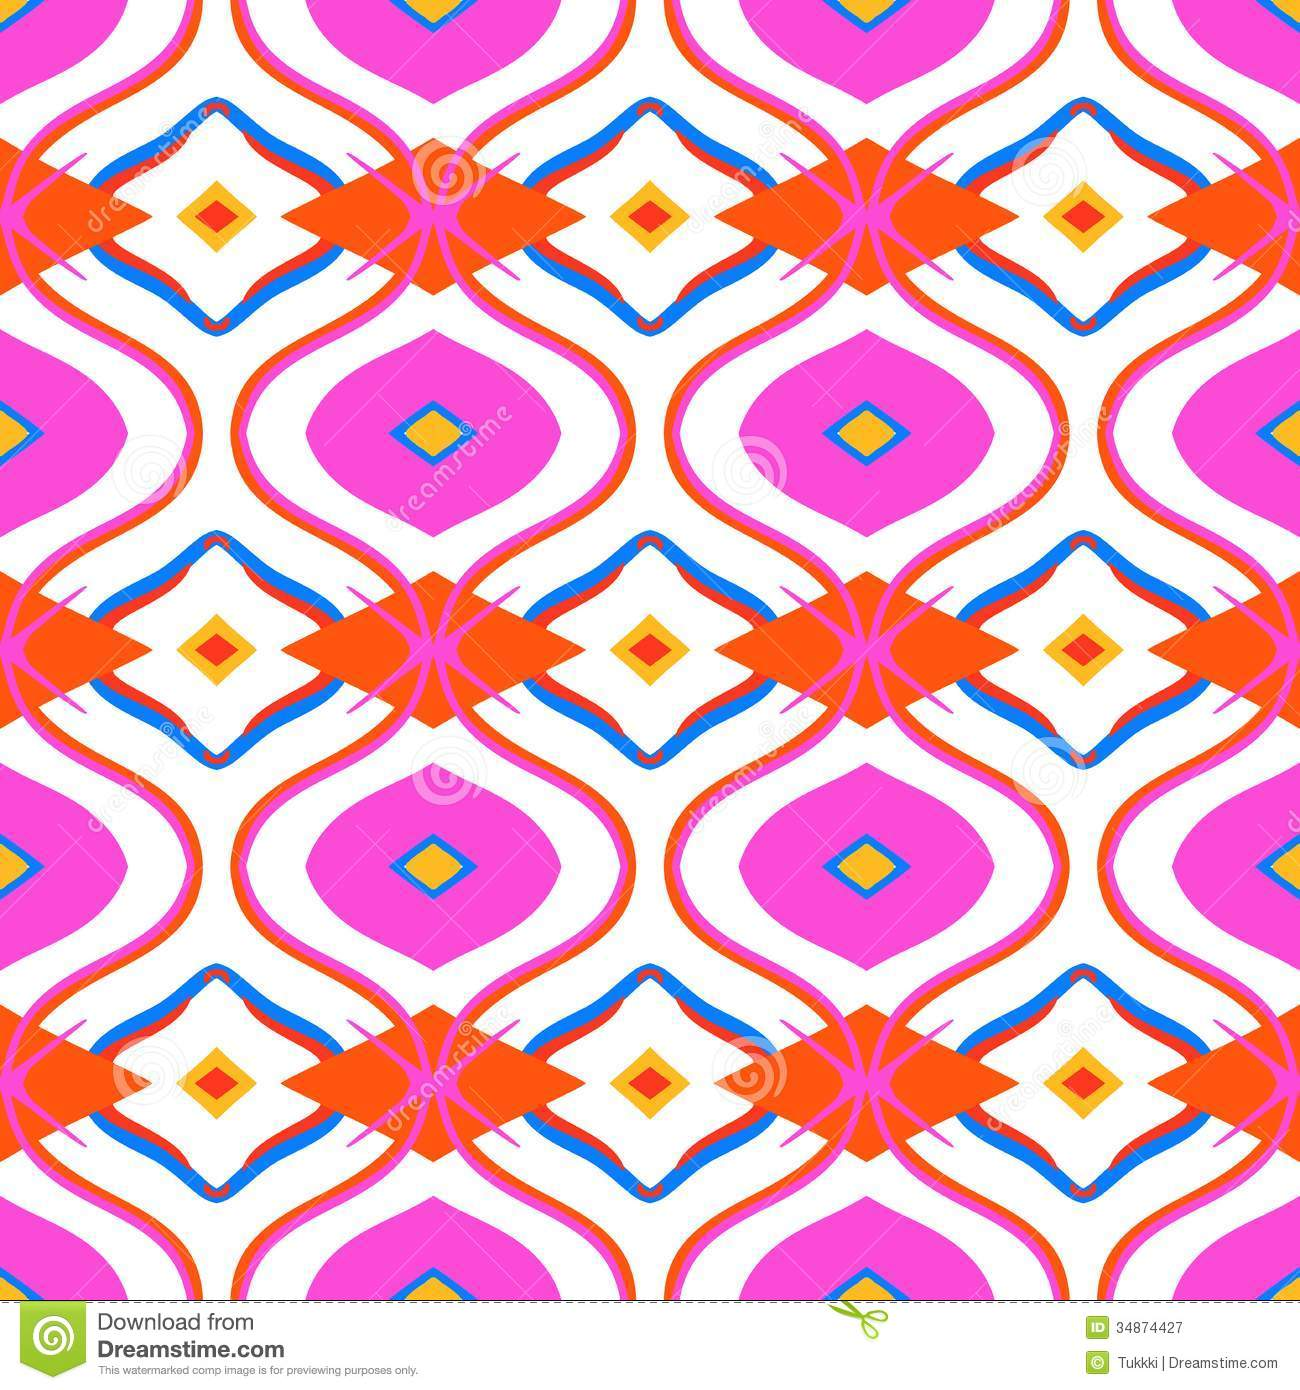 Ethnic pattern with arabic motifs royalty free stock photography image 34874427